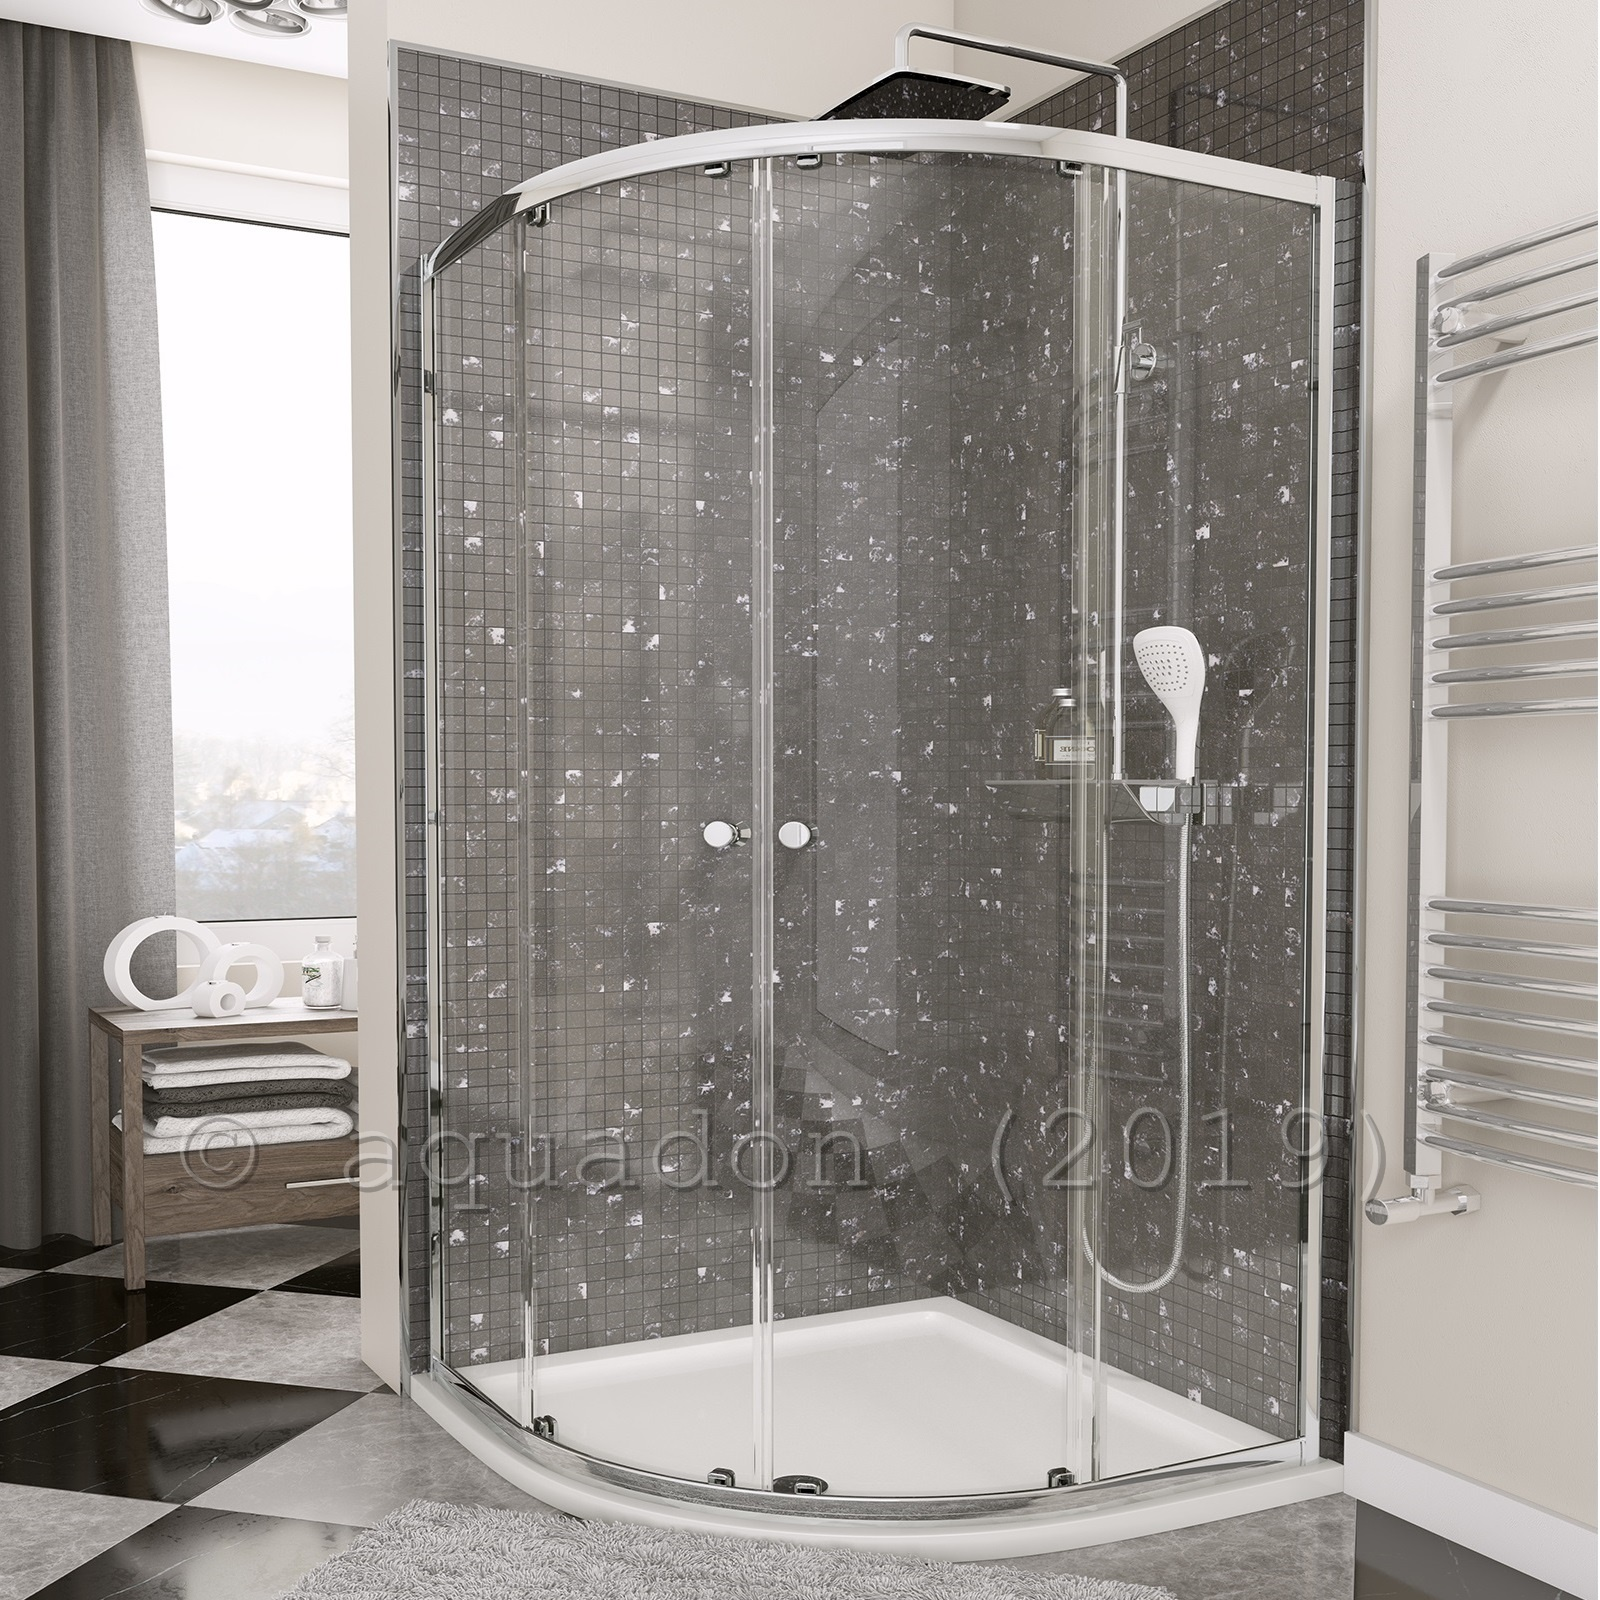 Corner Shower.Quadrant Corner Shower Enclosure Cubicle With Stone Tray Waste